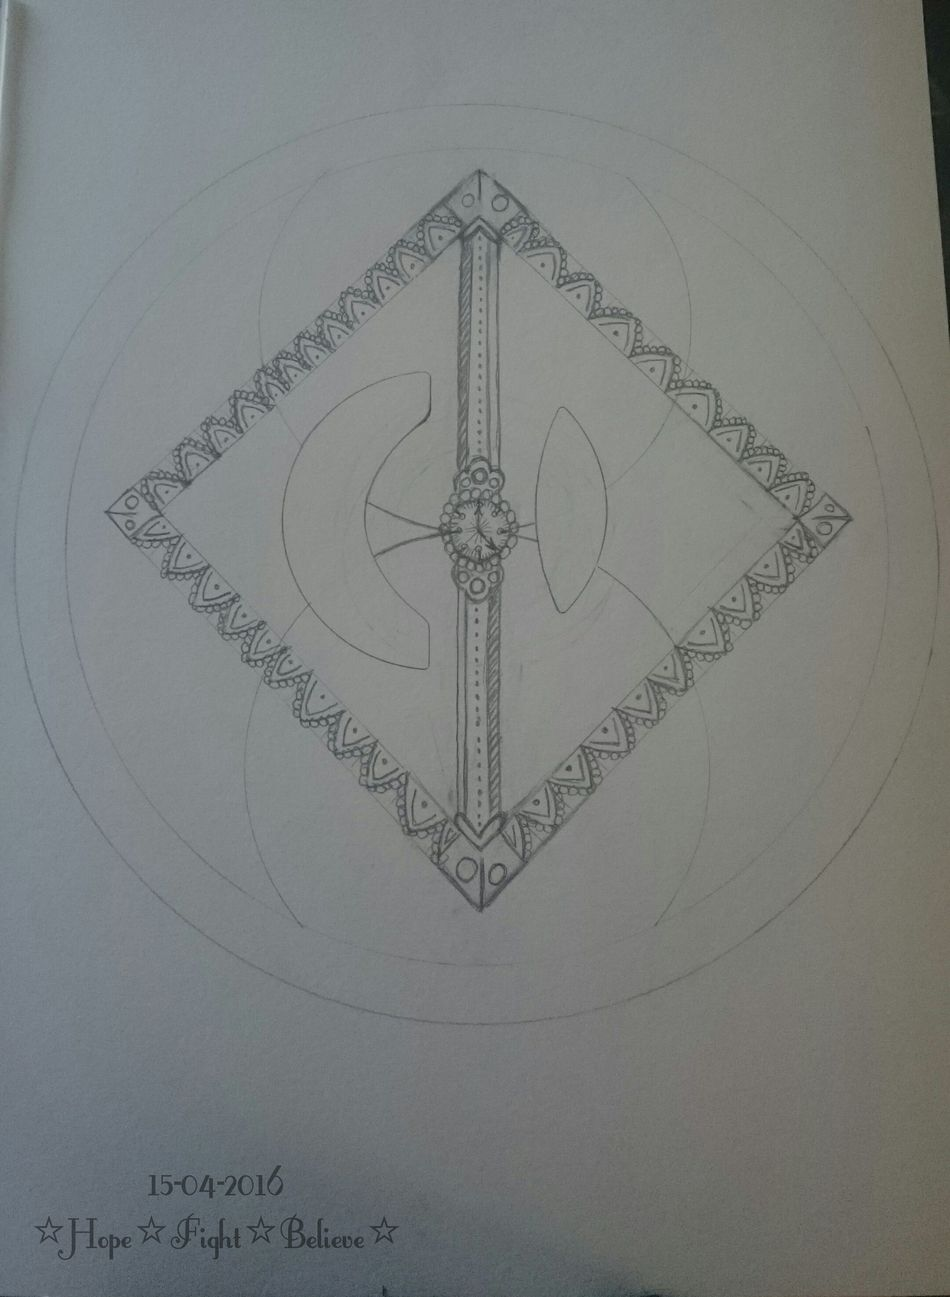 A Project im working on right now.. Let me now what you think of it.. Every comment are welcome😍.. Drawingoftheday InProgresss Art, Drawing, Creativity Artist Newartist Mandala Blackandwhite MeetAndGreet Supportartists Comments Plz